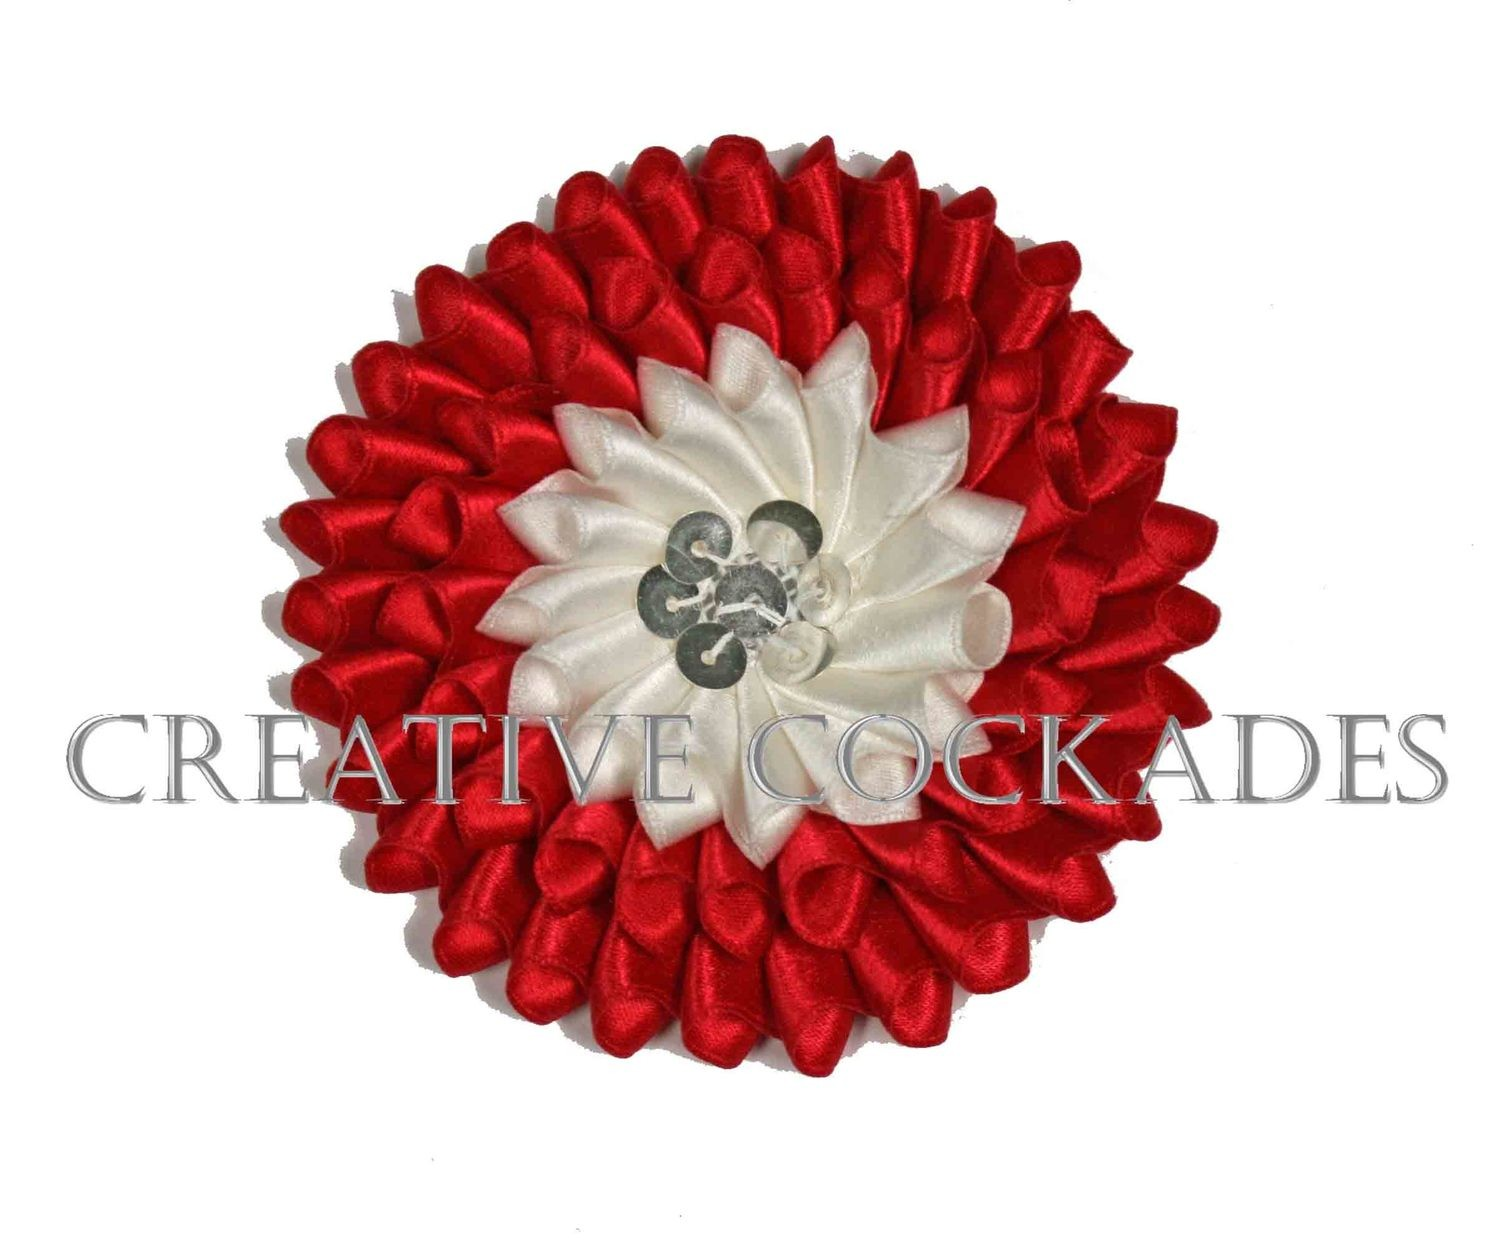 Red and White Silk Secession Cockade with Spangles